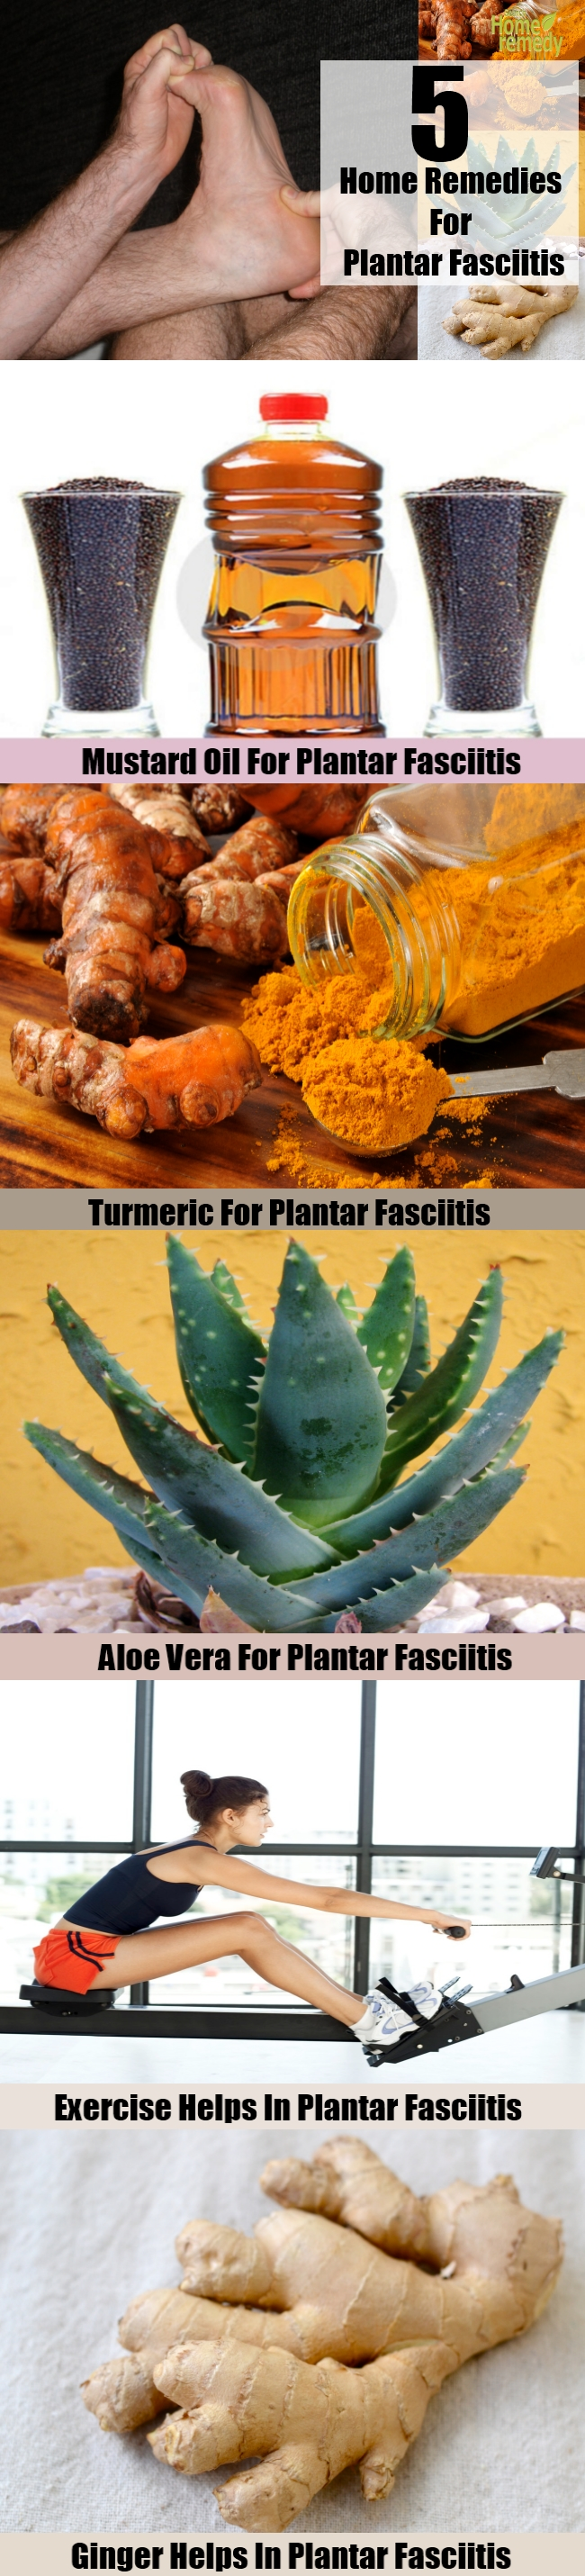 5 Effective Home Remedies For Plantar Fasciitis